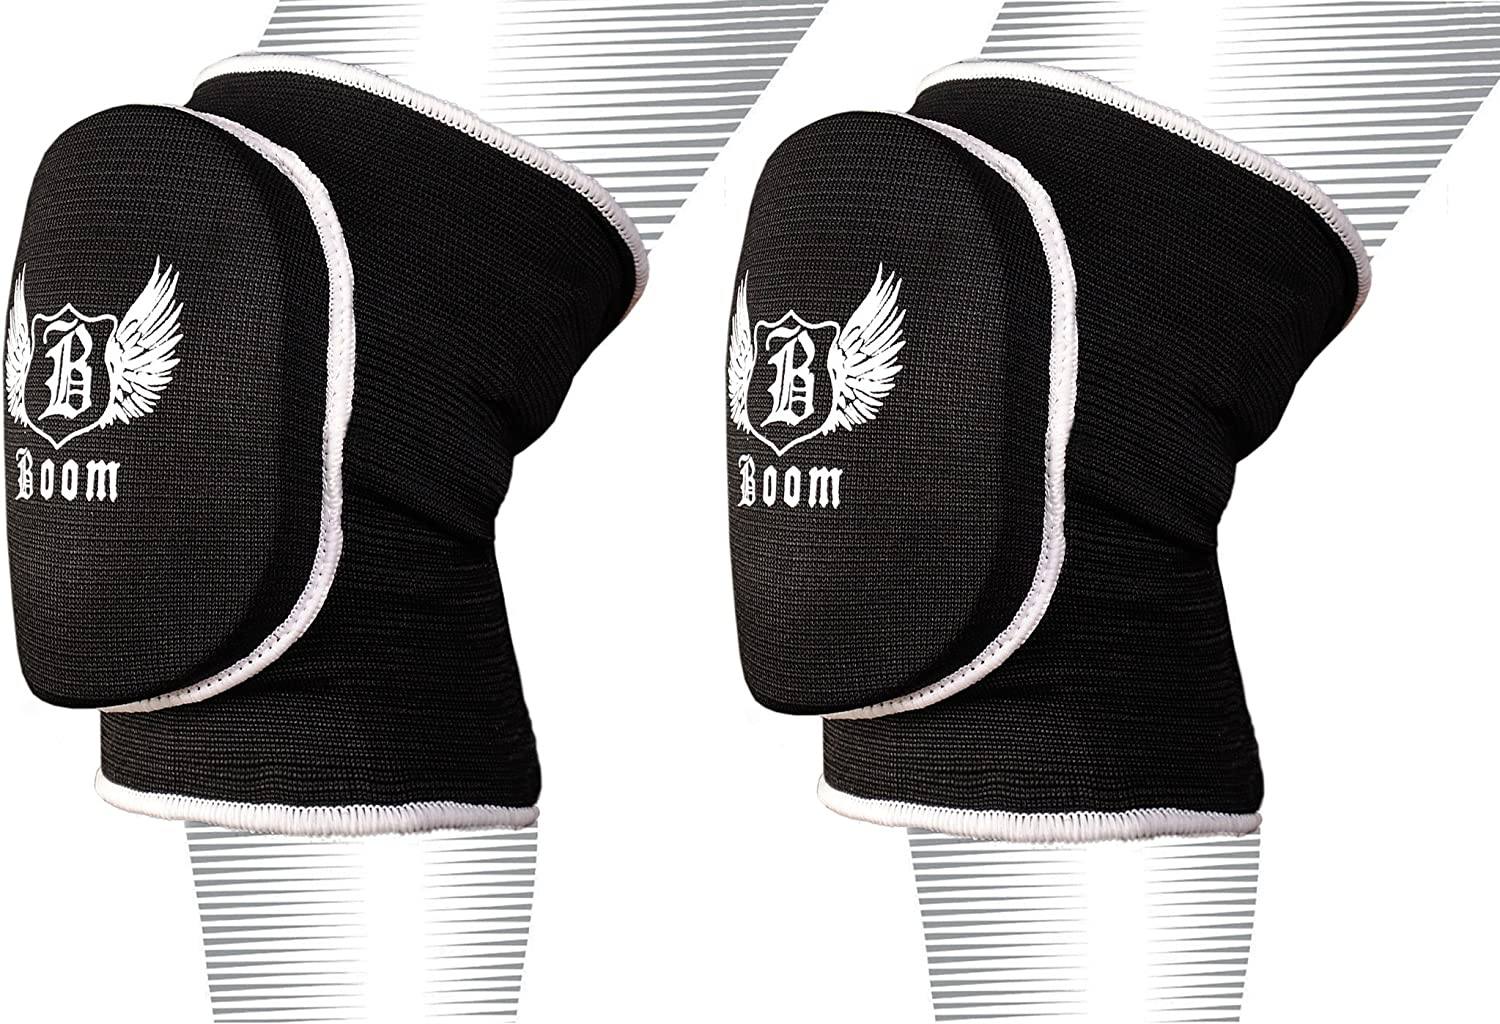 BOOM Elbow Pads Protector MMA Padded Arm Guard Support Martial Arts Boxing Brace